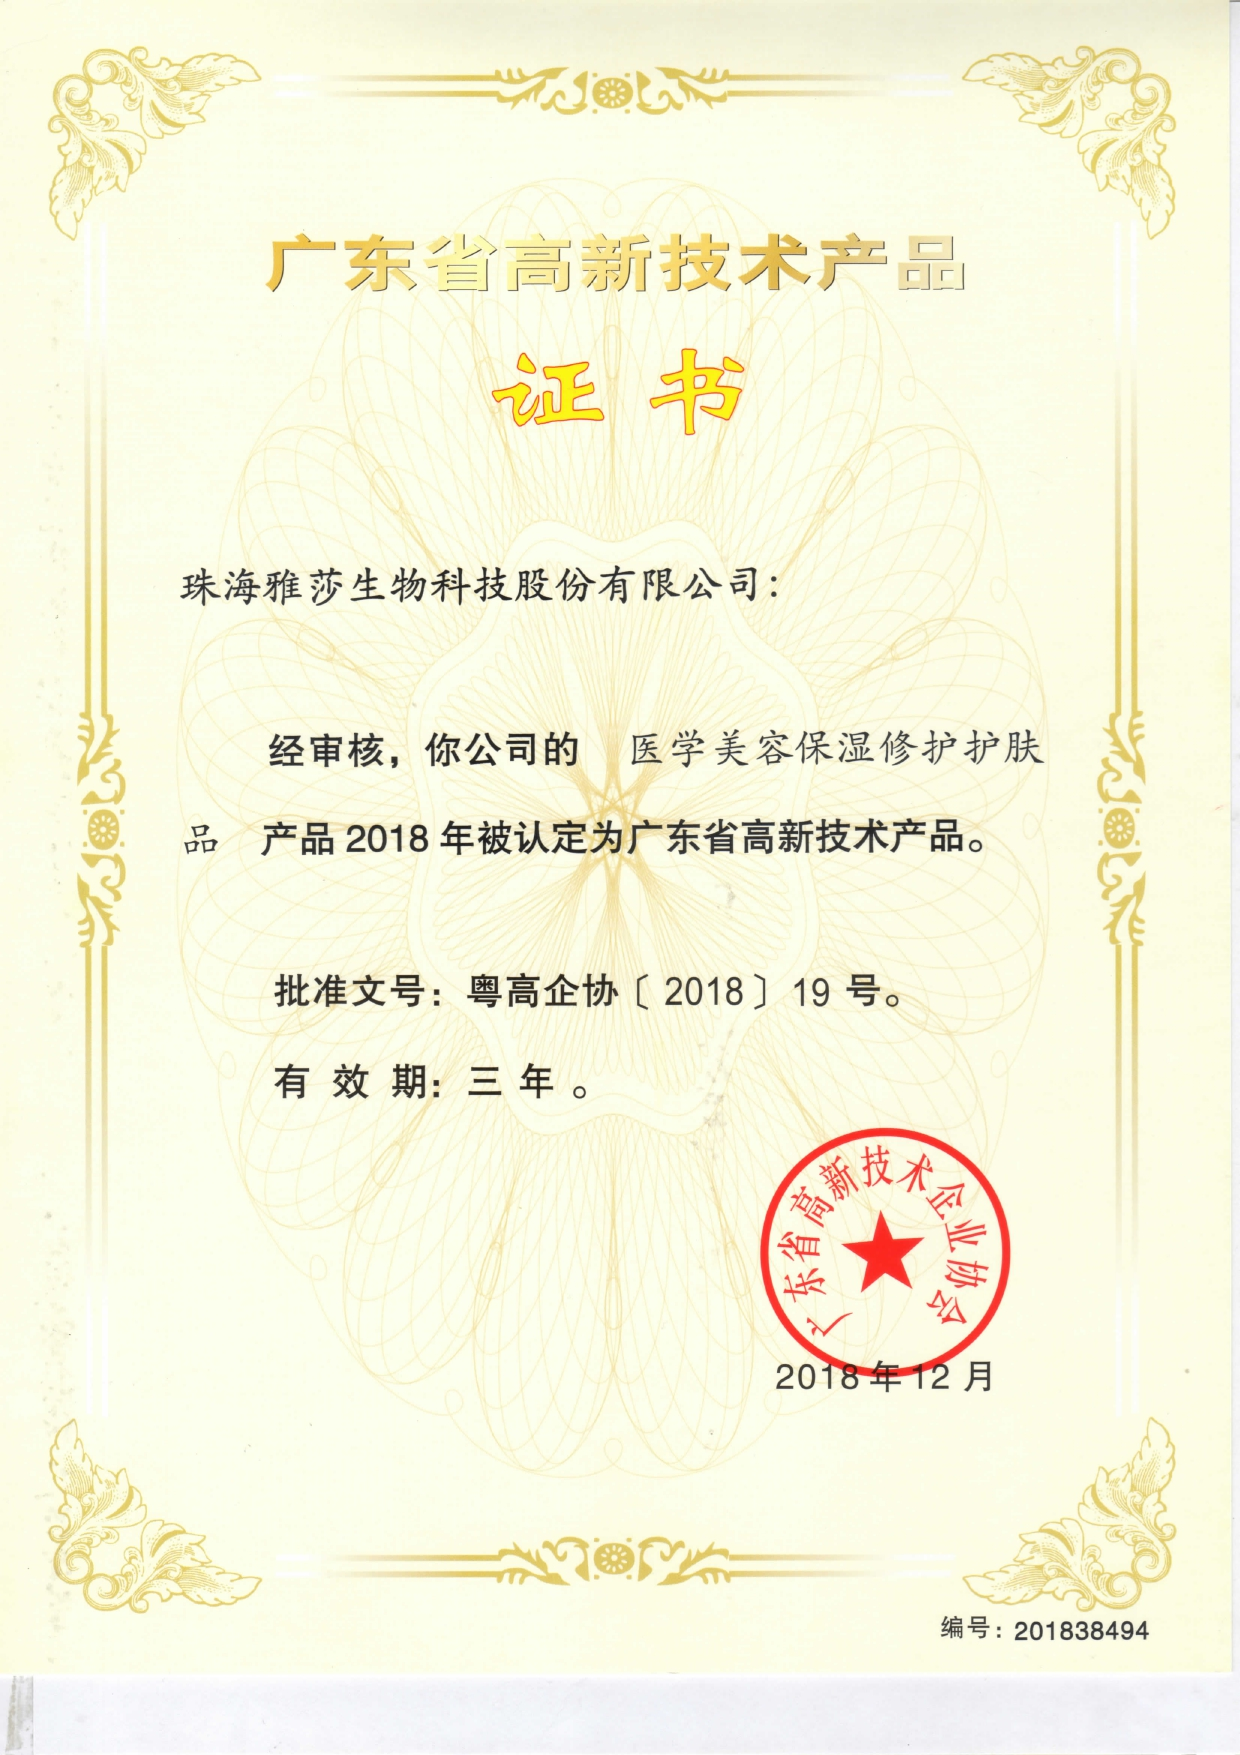 (HA Serum) Certificate of Guangdong Province New High-Tech Product